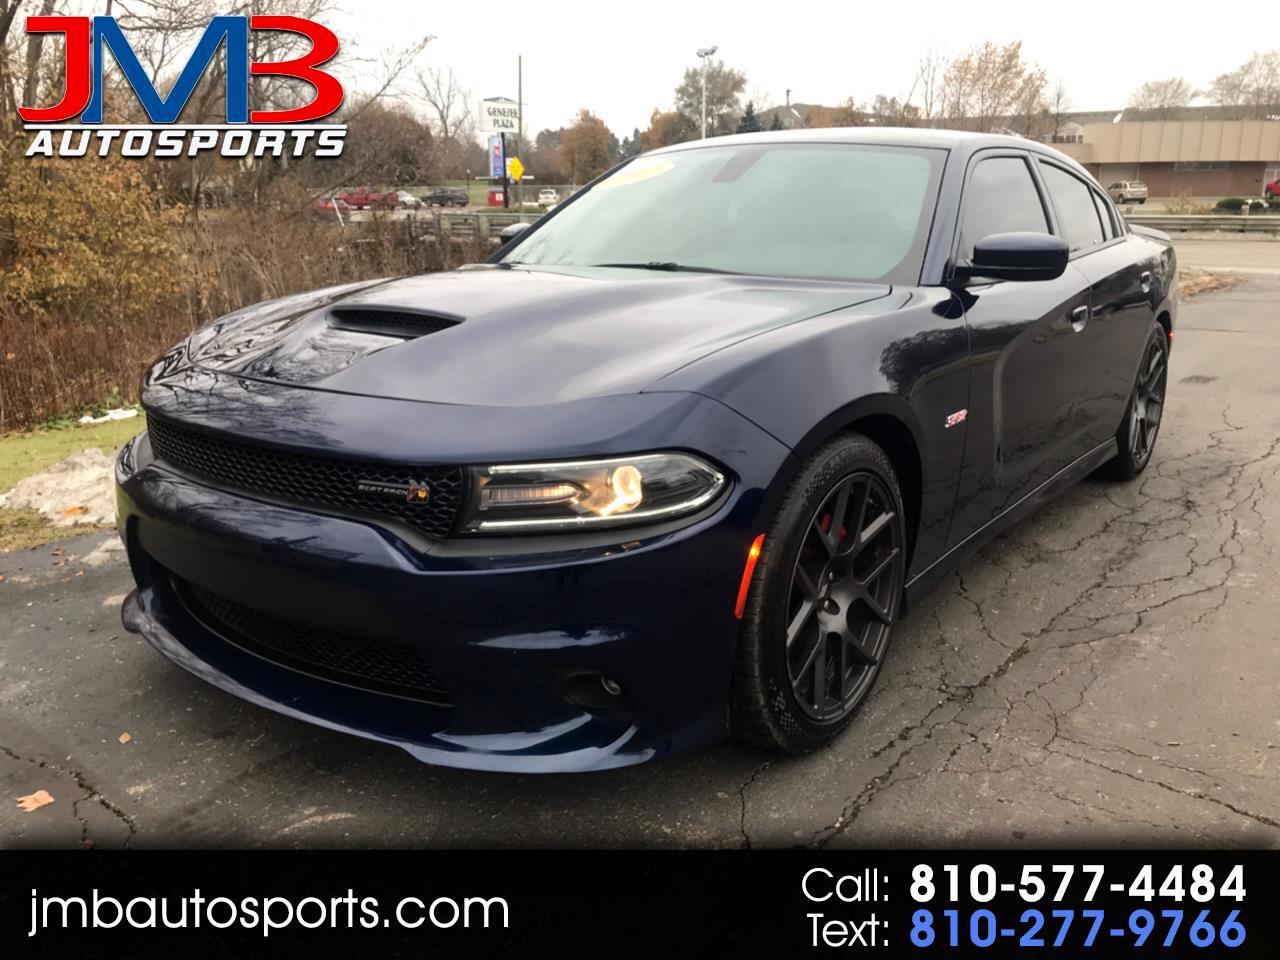 Used Tires Flint Mi >> Used 2017 Dodge Charger R T Scat Pack Rwd For Sale In Flint